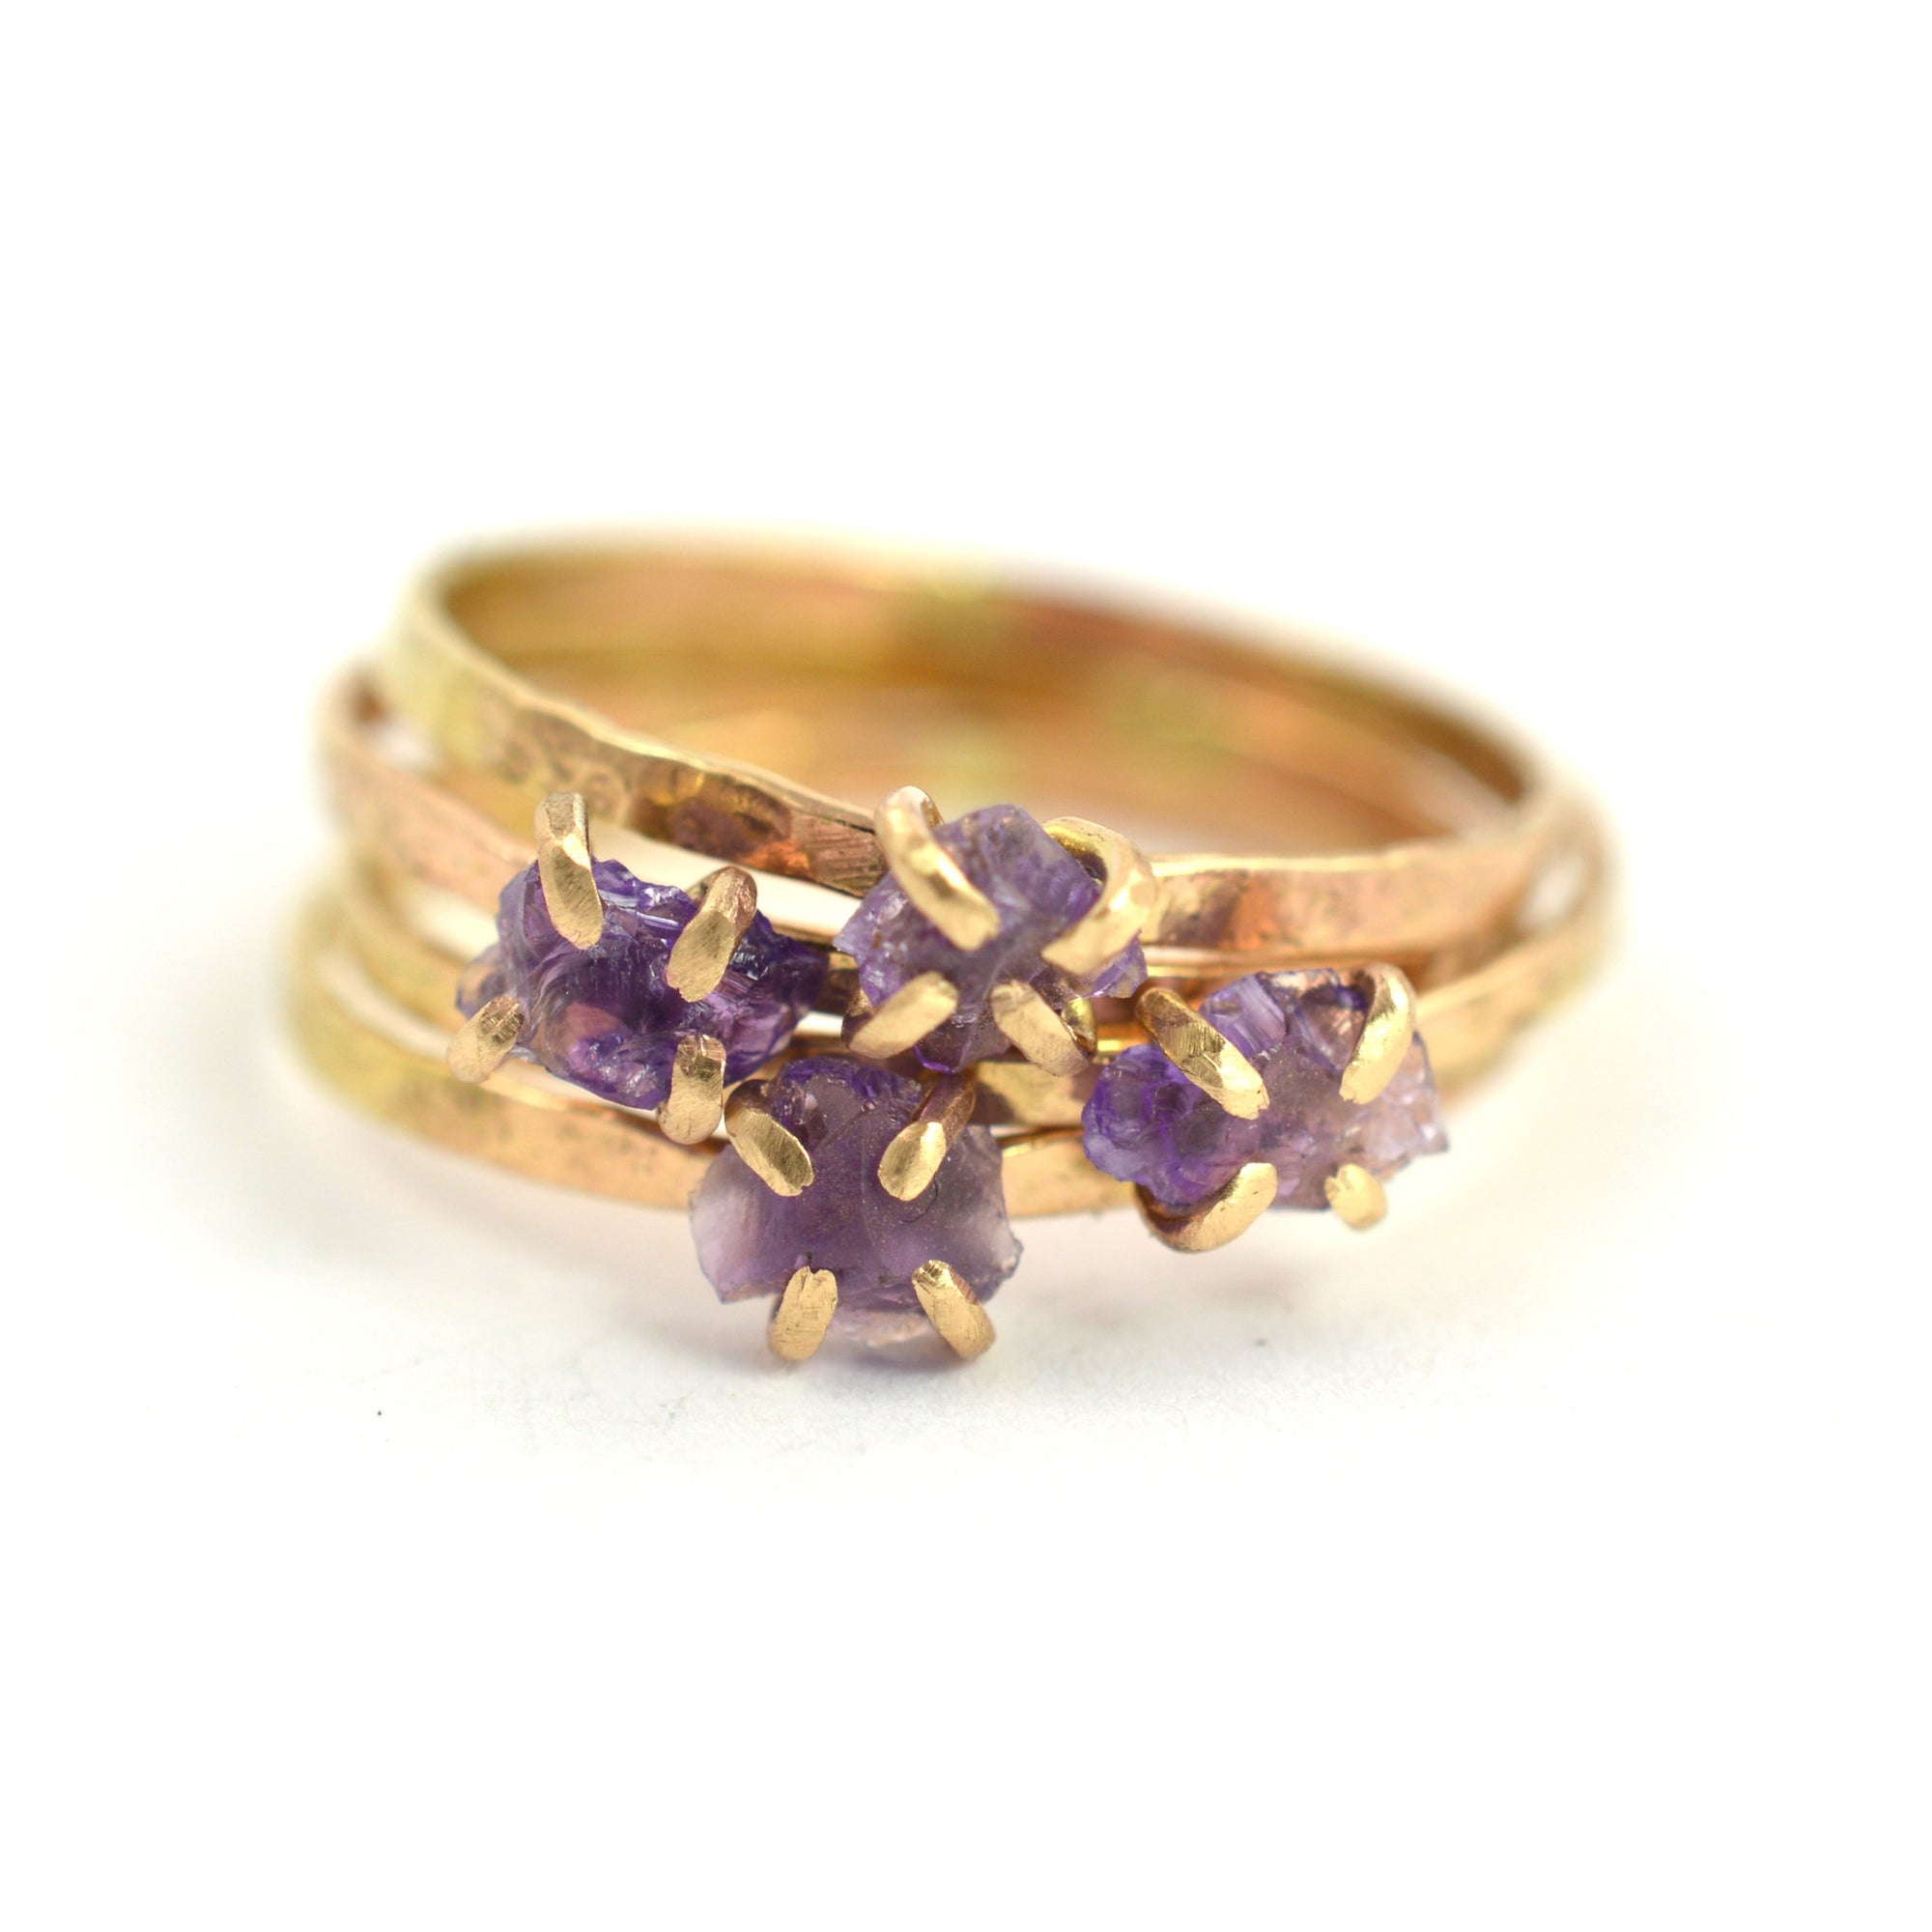 colour stone cat rings amethyst gold silver upload ring amg and engagement green amethist yellow cassiopeia